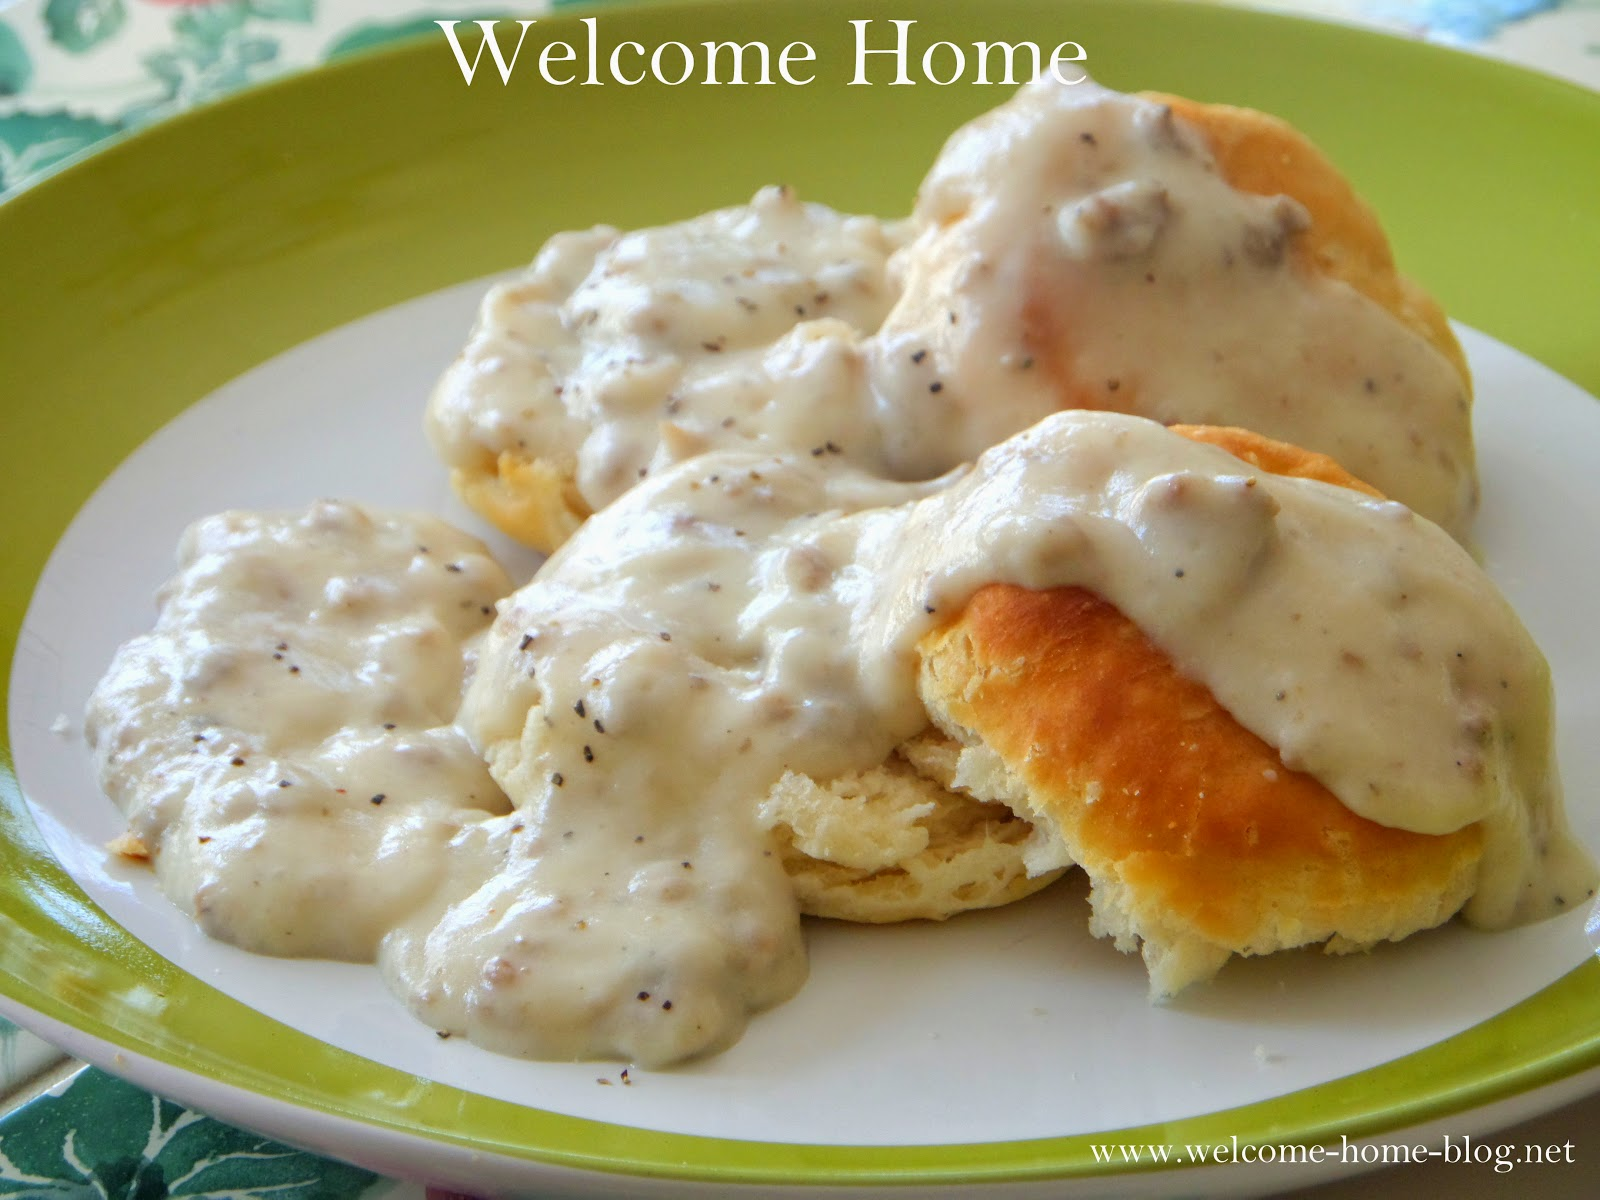 Welcome Home Blog: ♥ Sausage Gravy and Buttermilk Biscuits